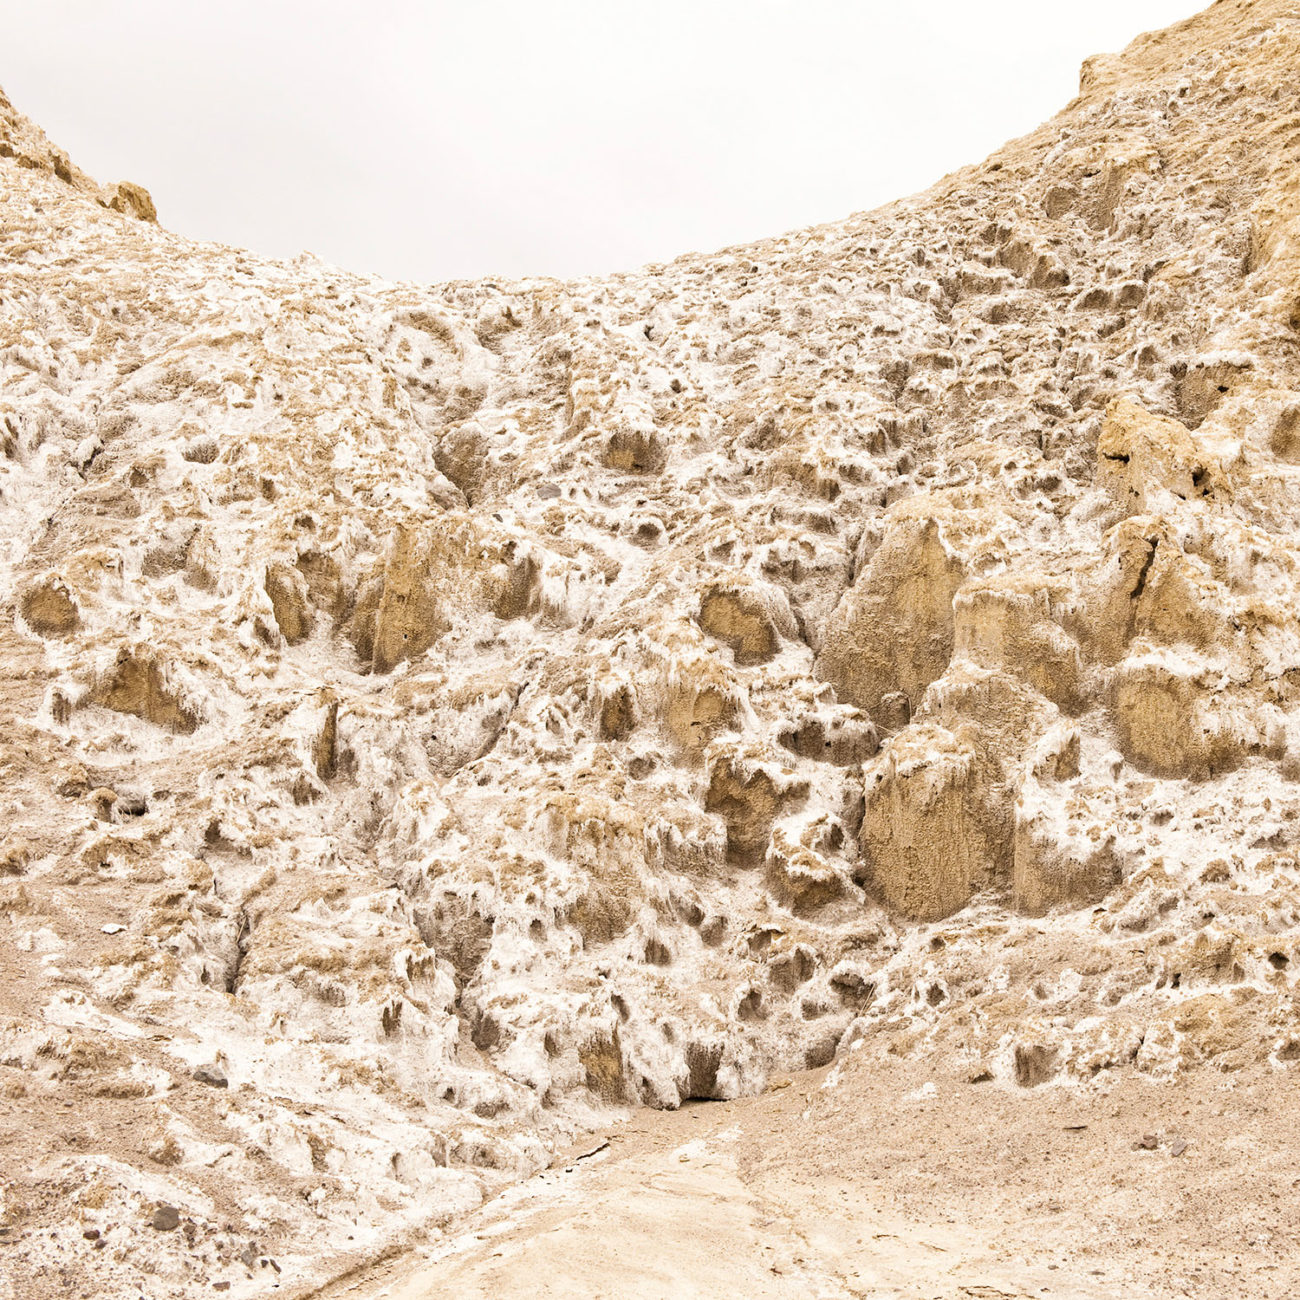 Mustard Canyon, Study I, Death Valley, 2009